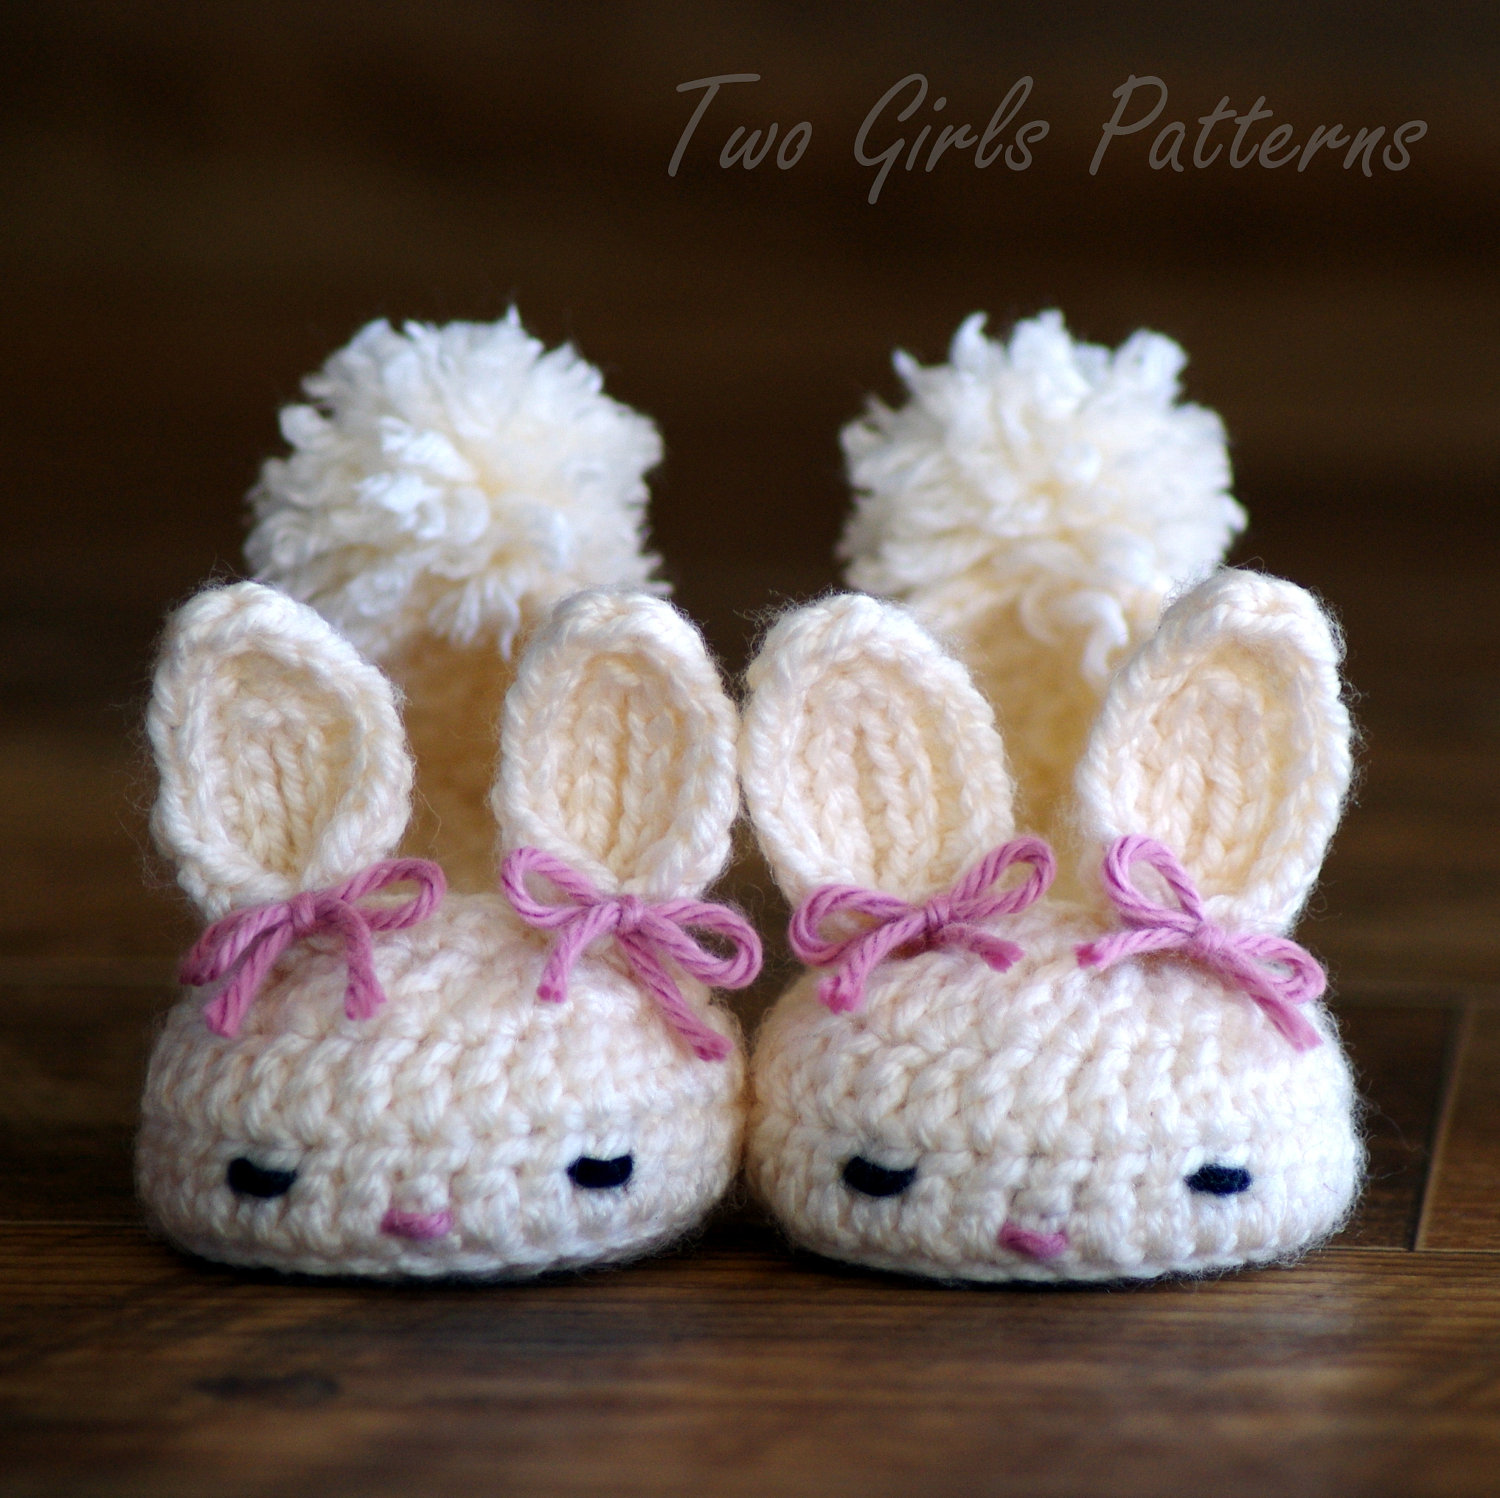 Crochet Baby Booties : Pics Photos - Crochet Baby Booties